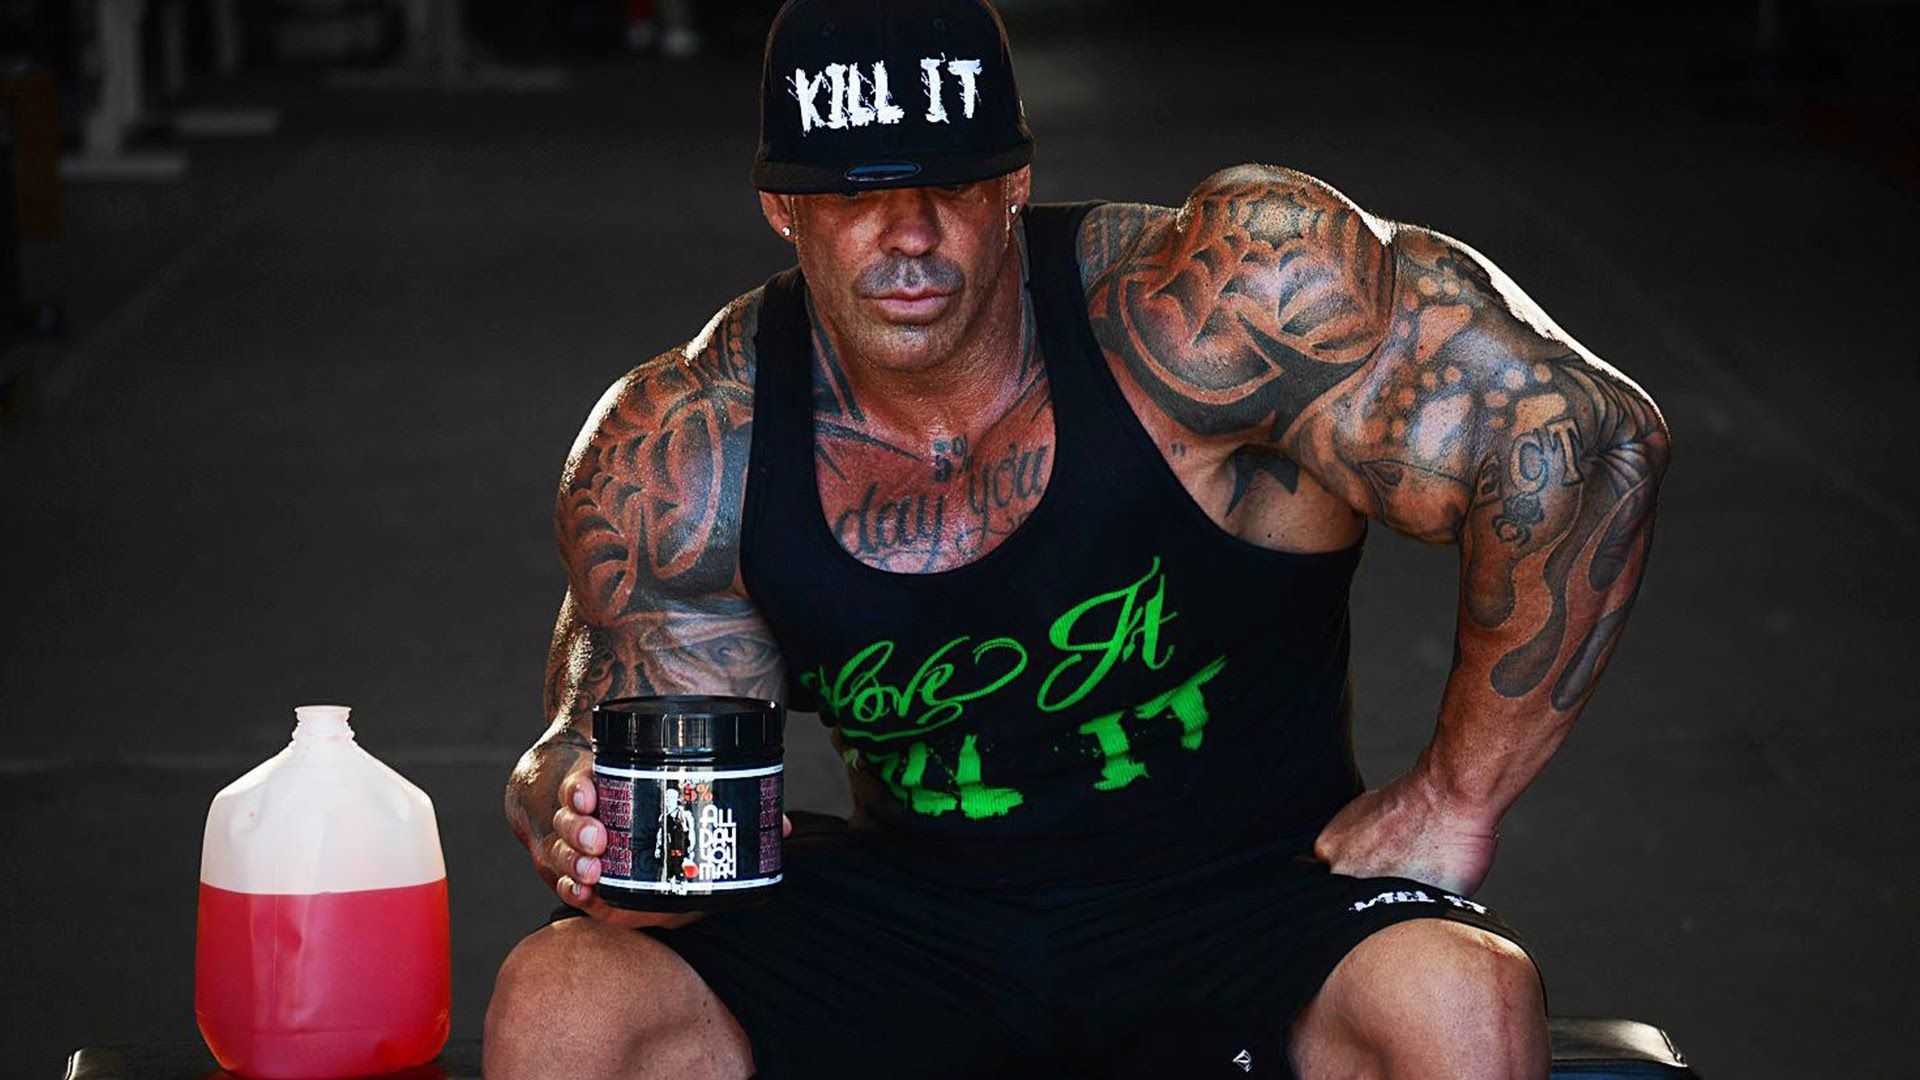 Rich Piana S Supplement Scams Workout Pictures Bodybuilding Bodybuilding Workouts